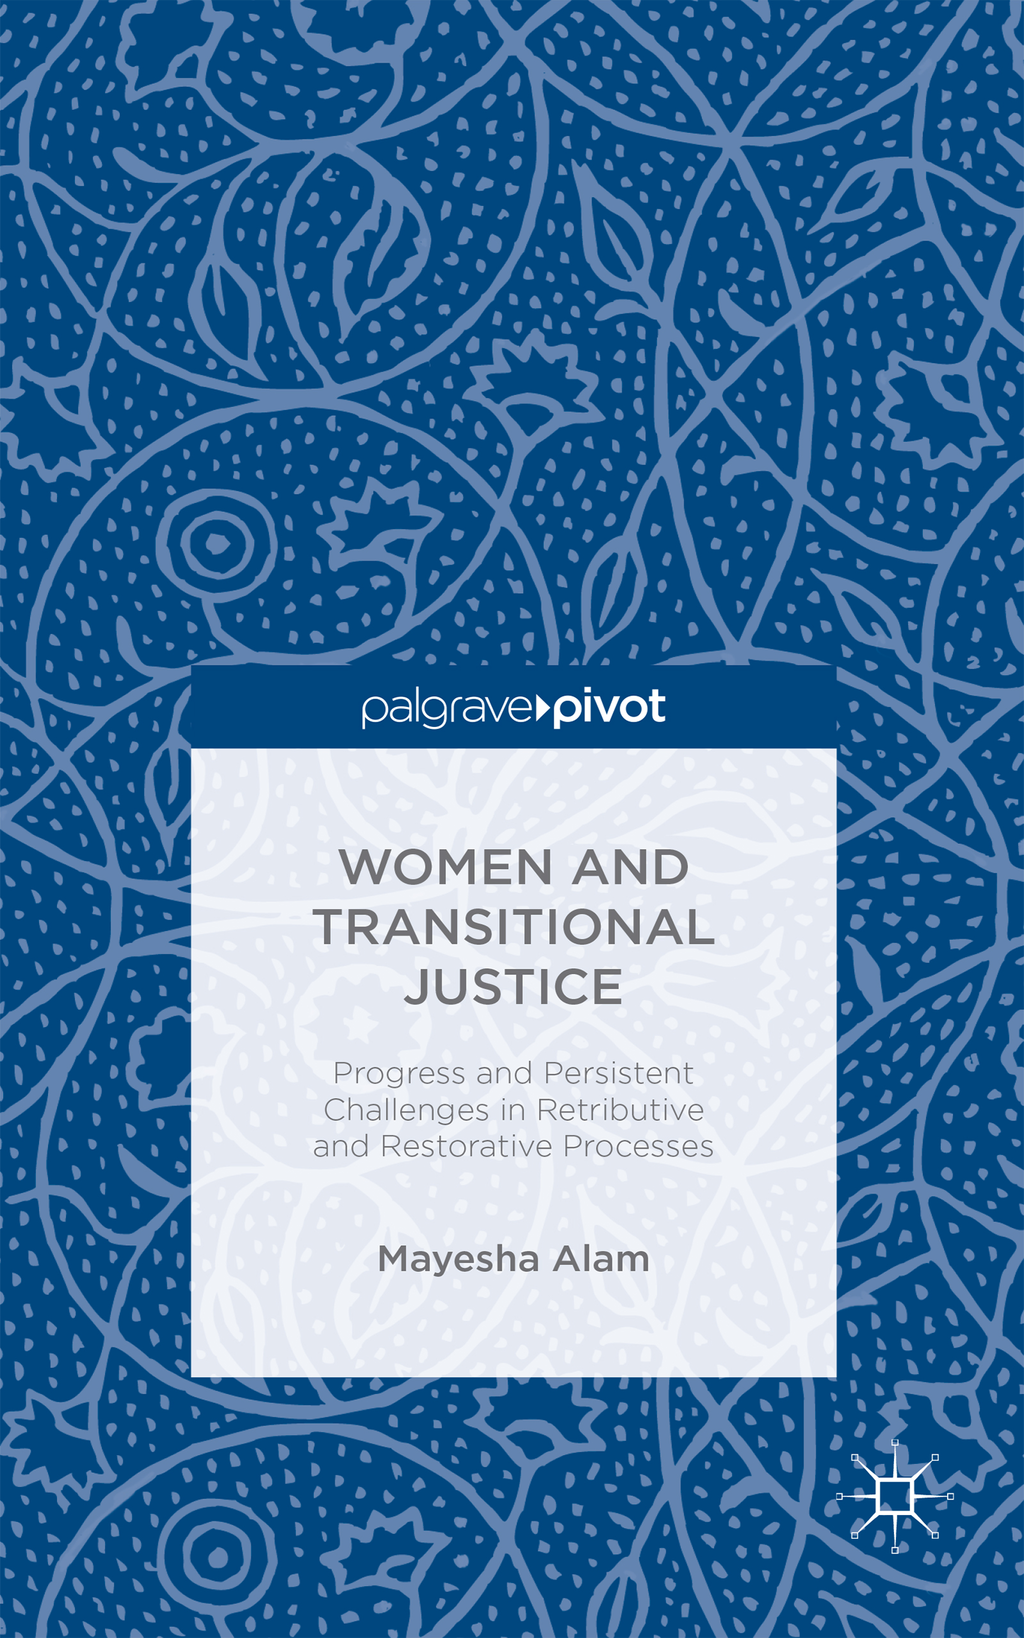 Women and Transitional Justice Progress and Persistent Challenges in Retributive and Restorative Processes